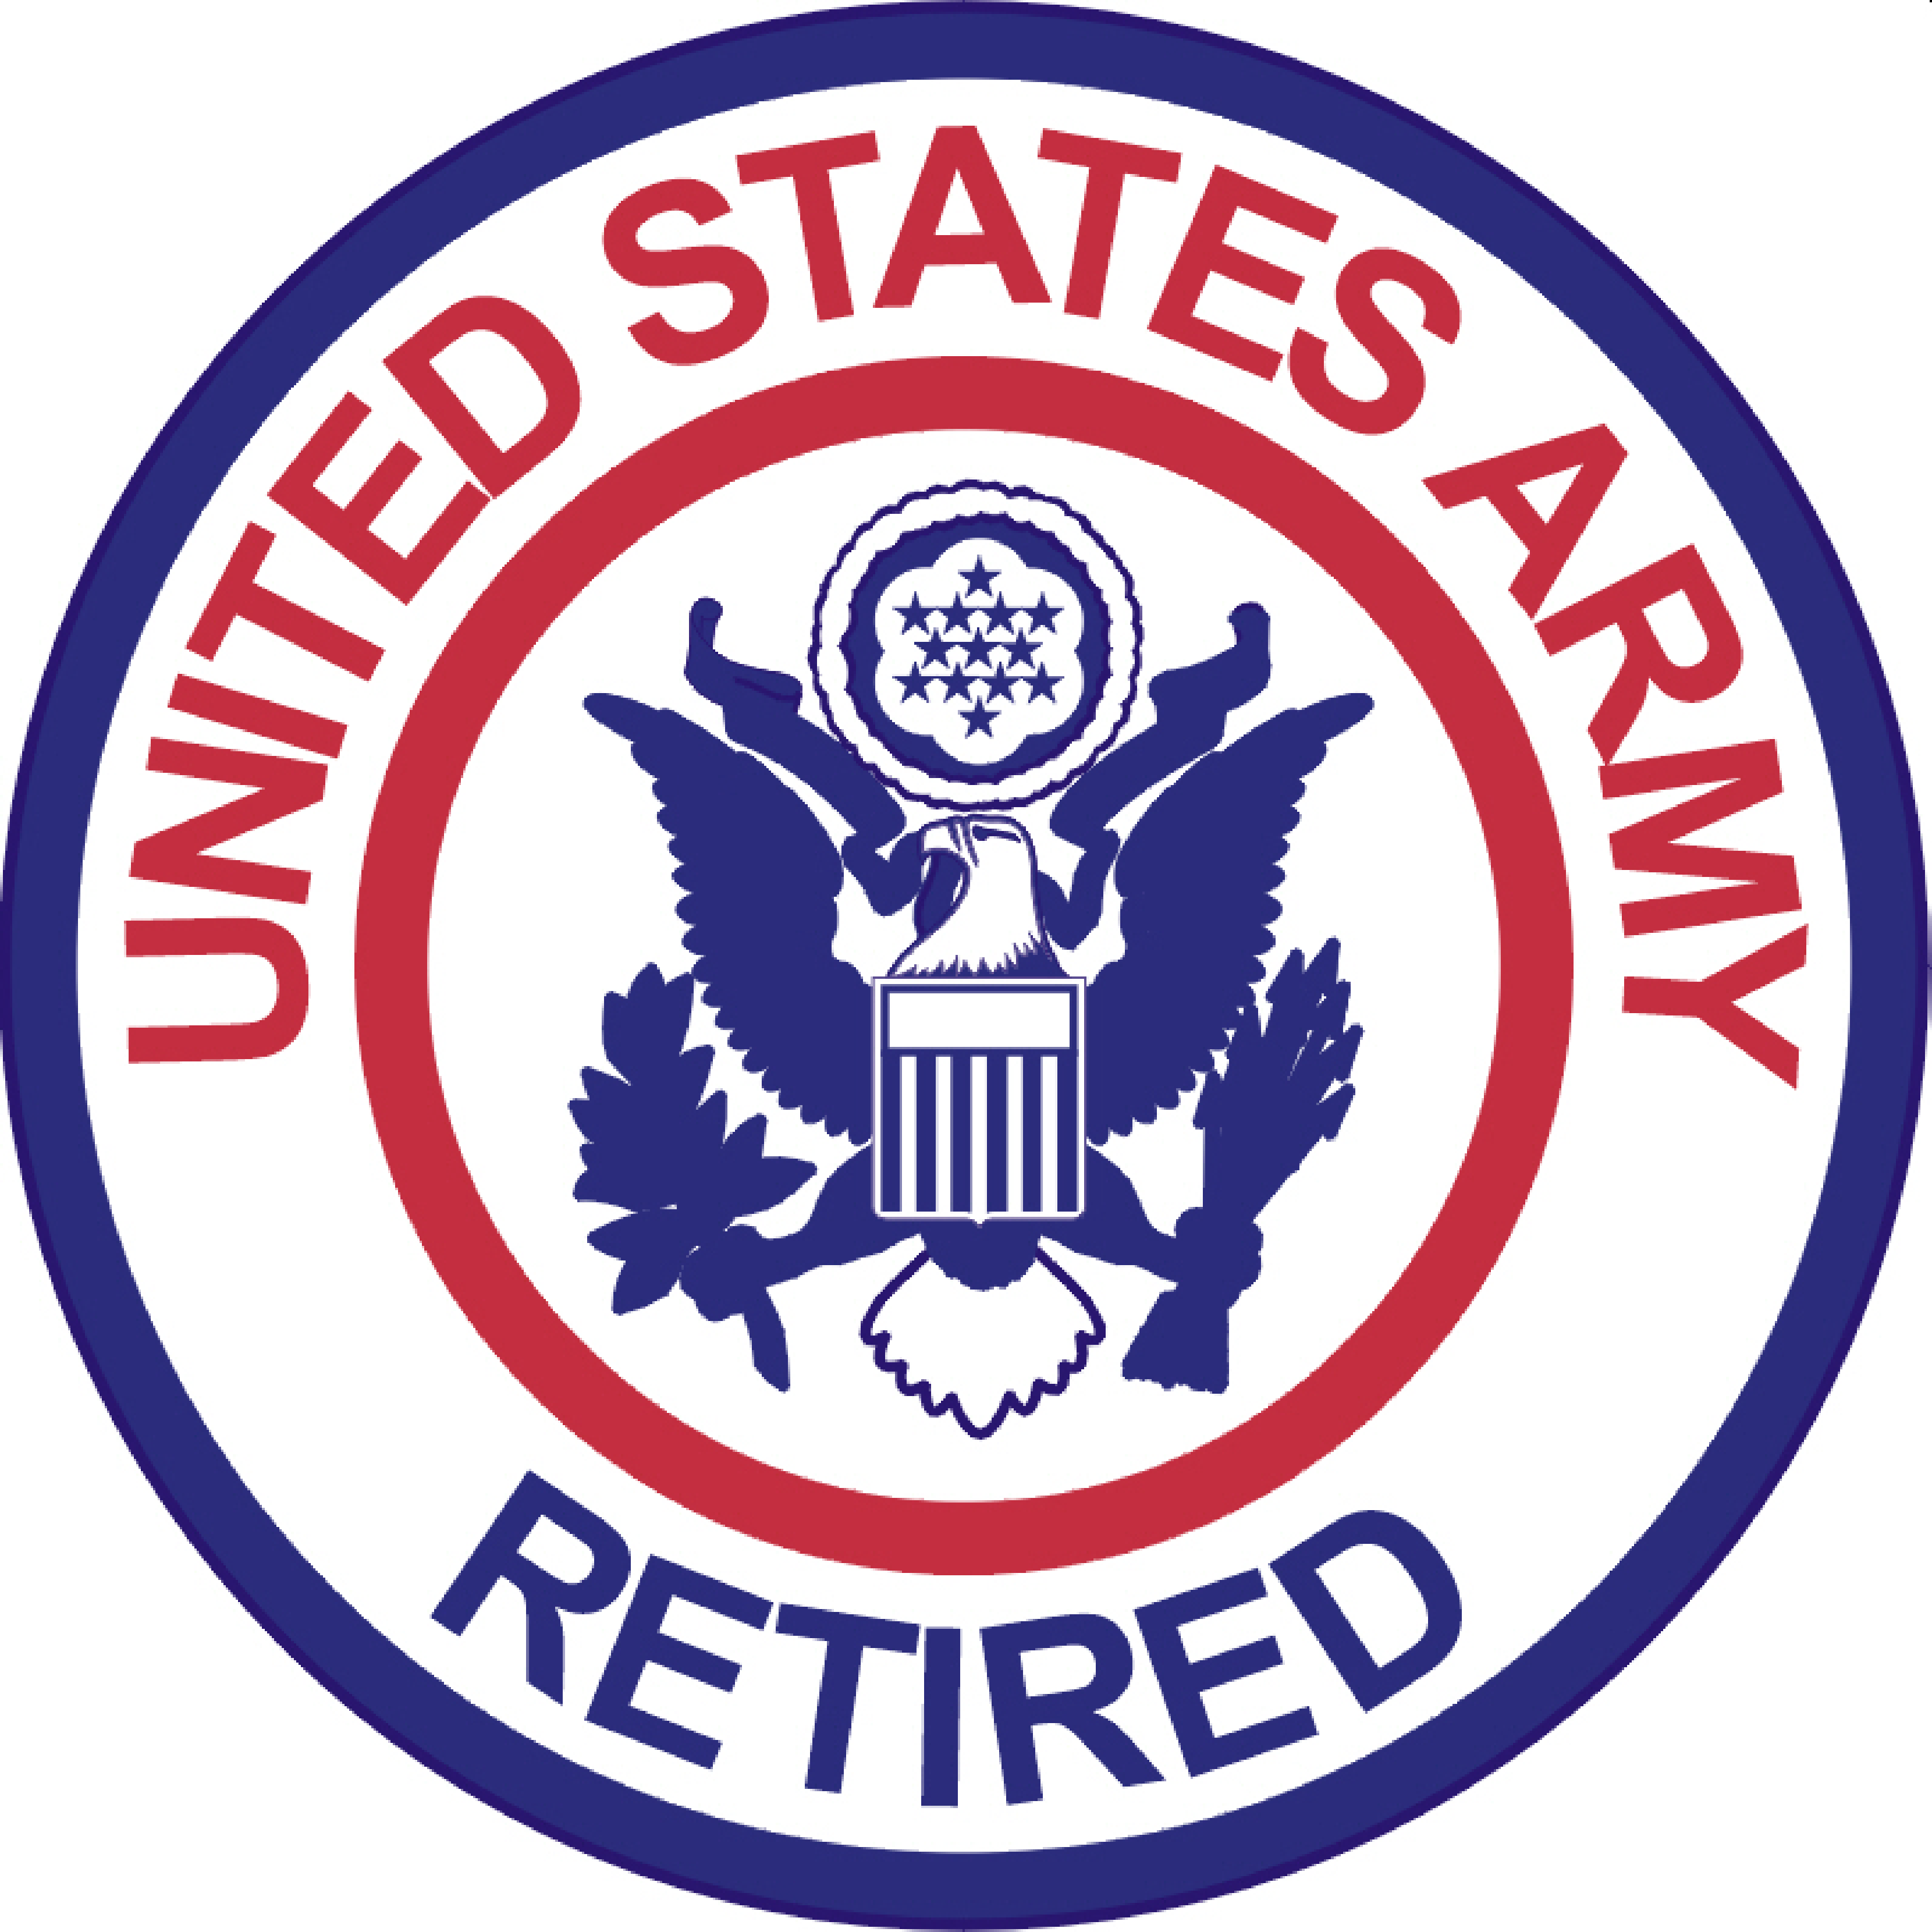 8 U.S. Army Base Icon.png Images